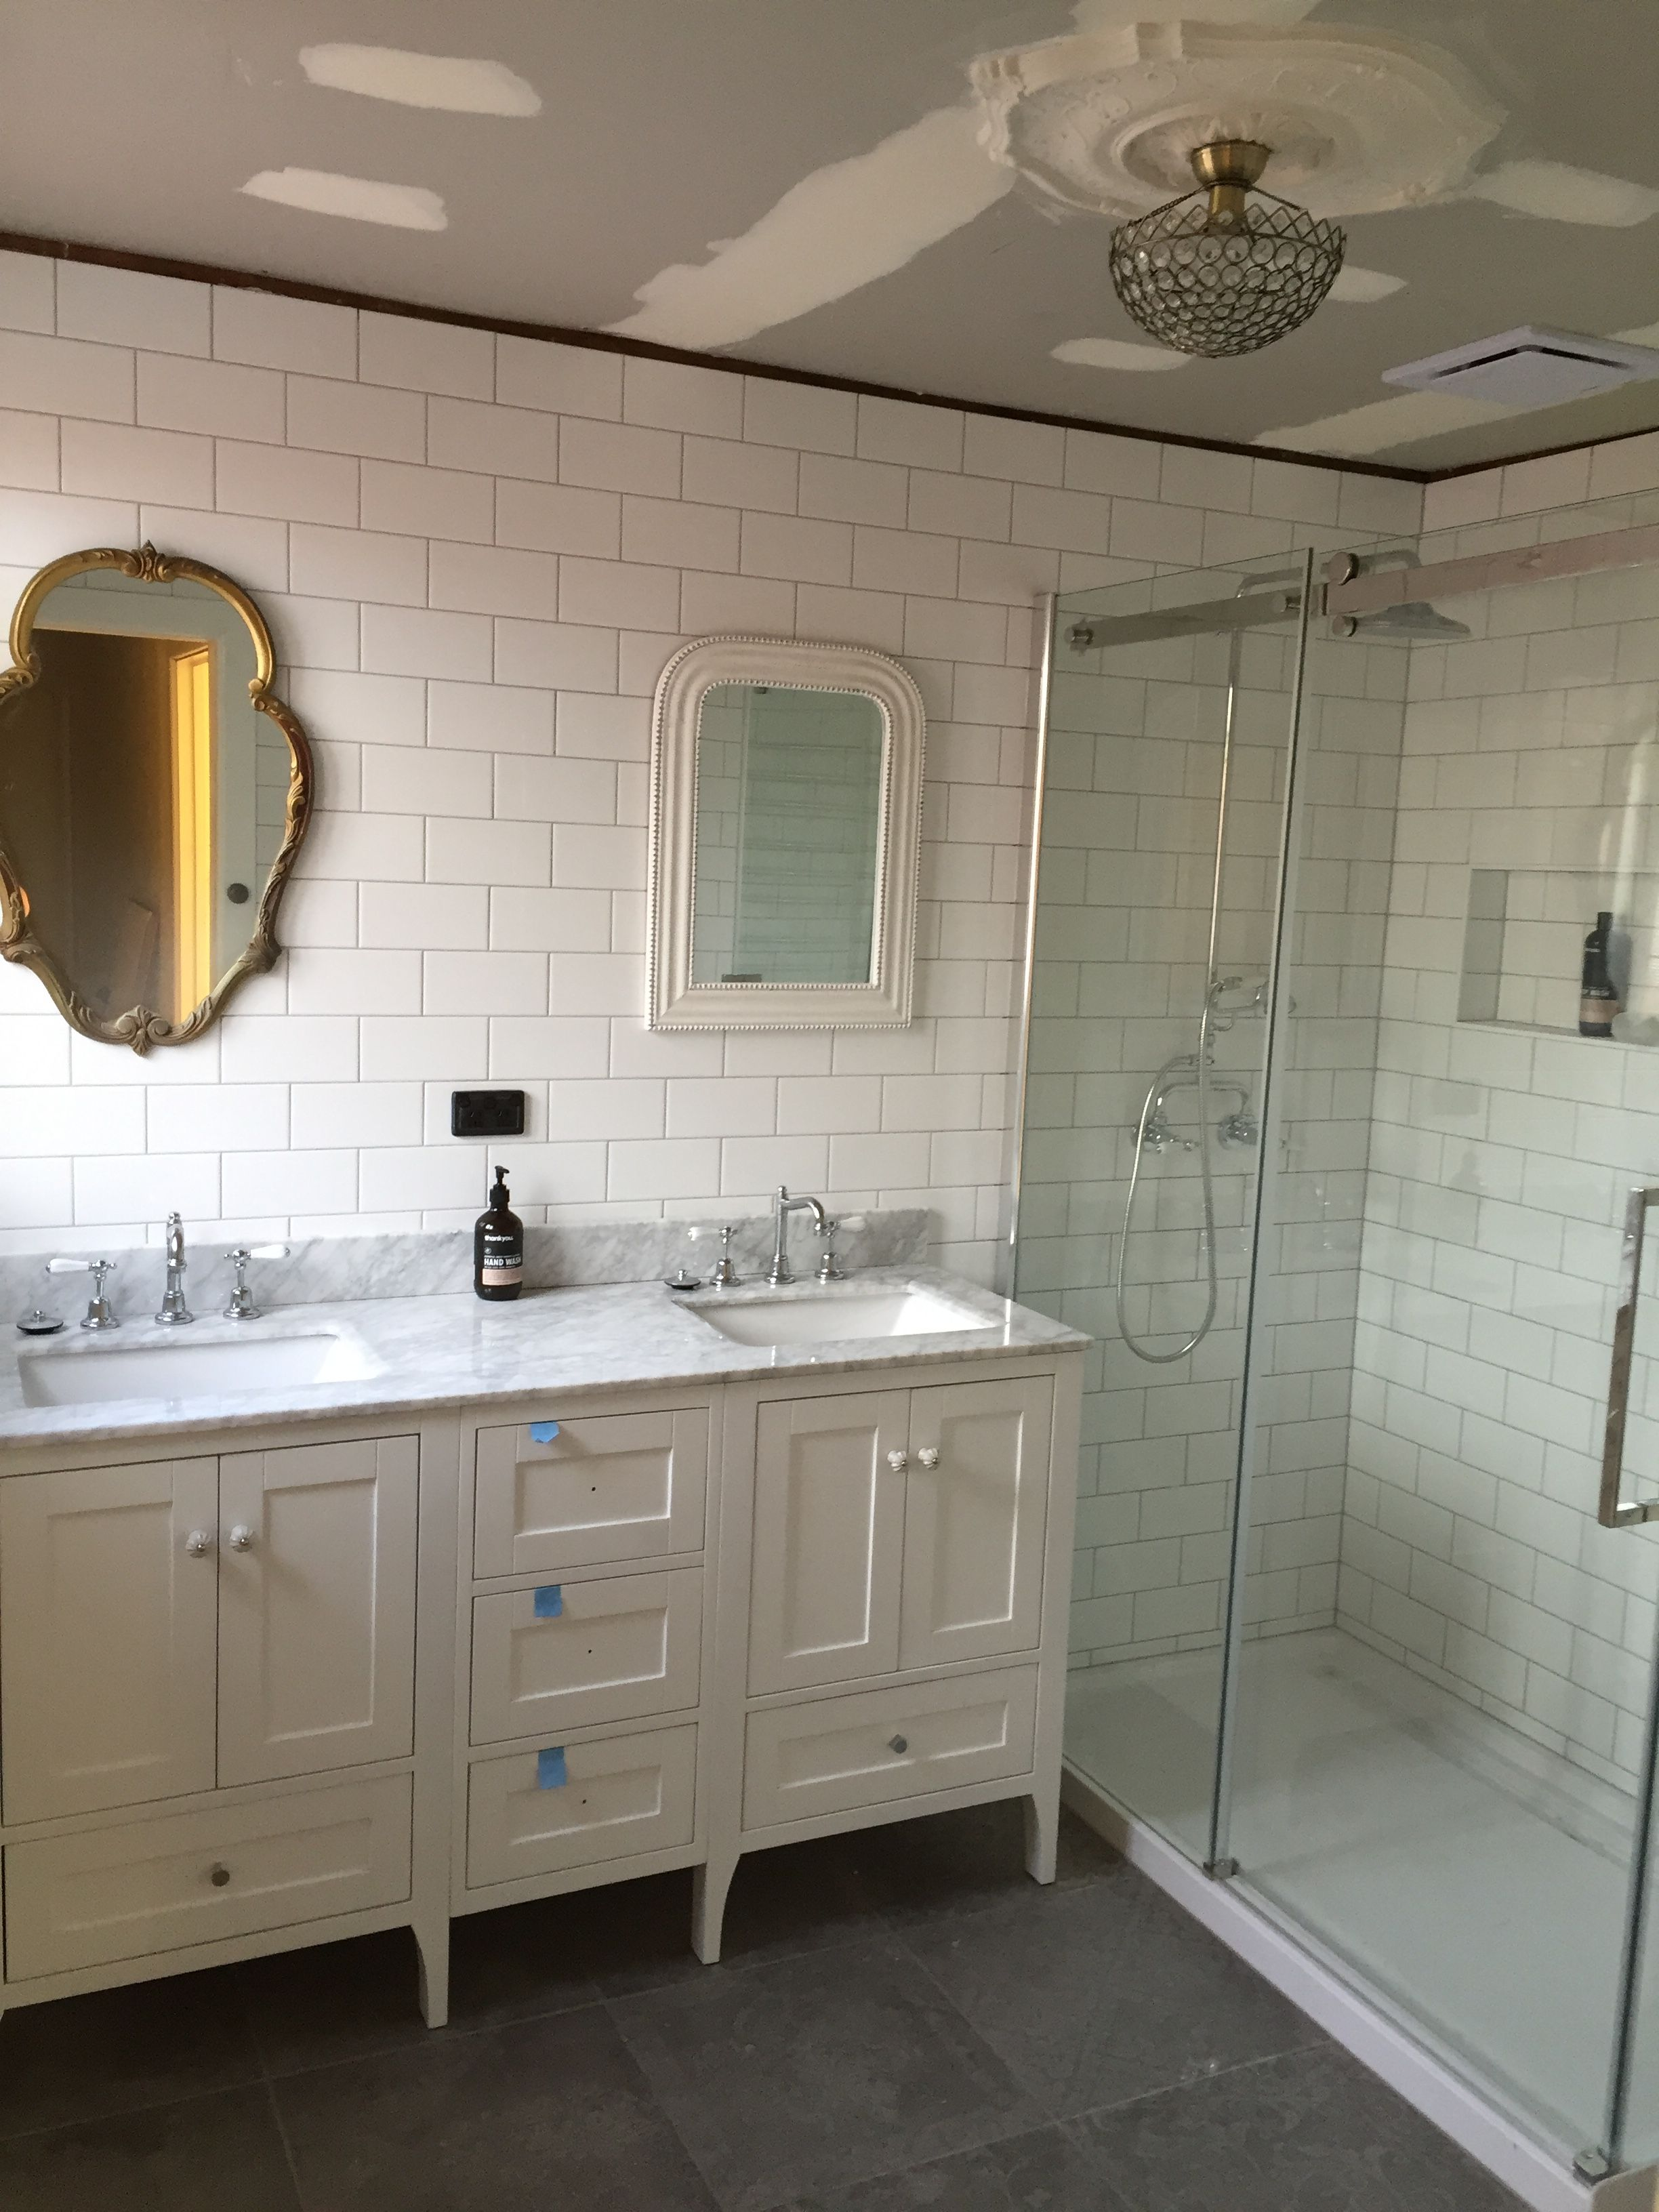 My Ensuite Almost Complete His And Hers Mismatched Vintage Mirrors 1 6m Double Vanit Modern Bathroom Mirrors Bathroom Vanity Designs Bathroom Vanity Makeover